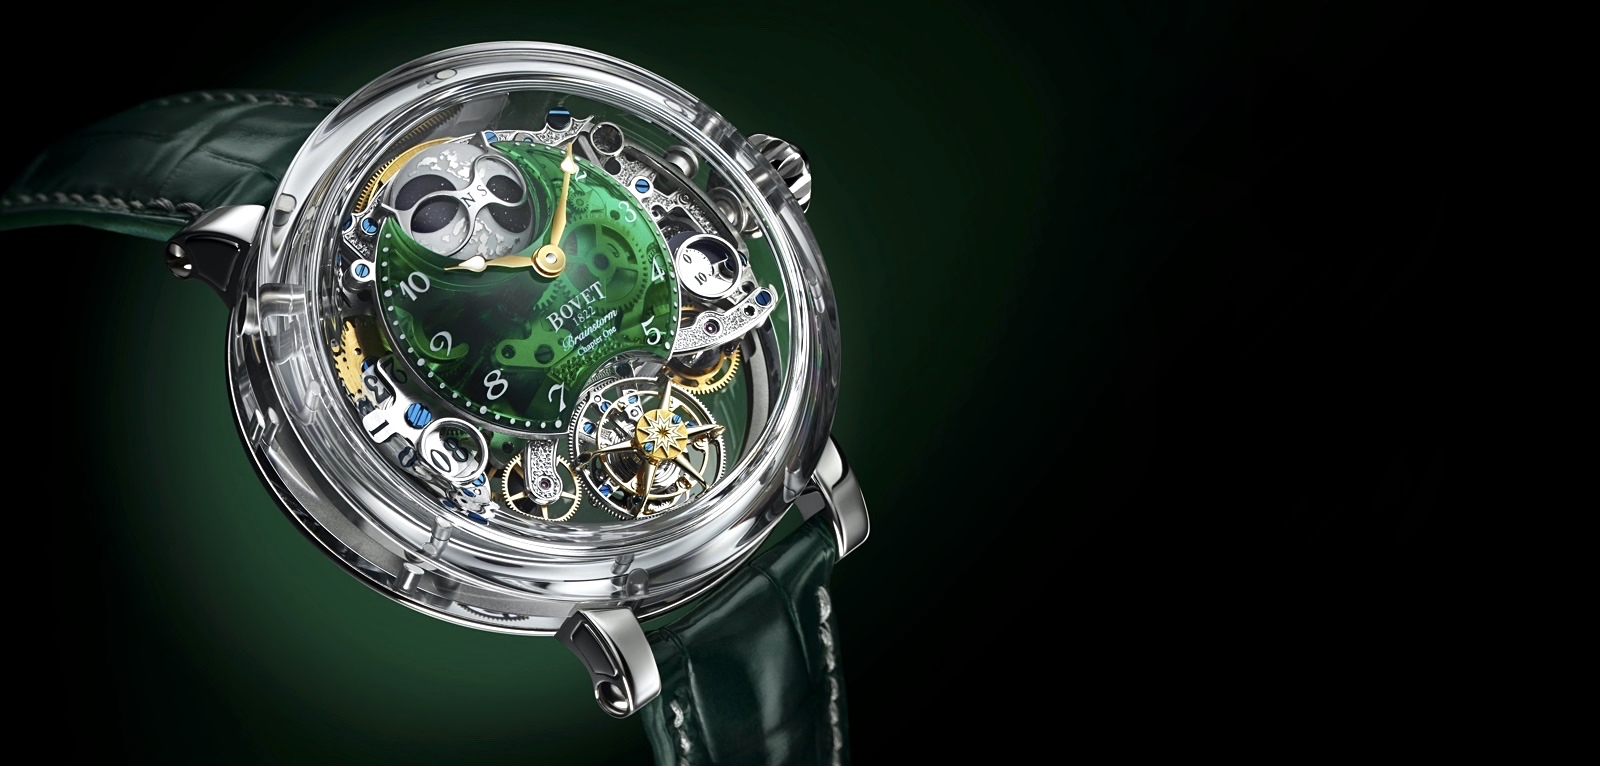 Bovet 1822 Récital 26 Brainstorm Chapter One Green Cover